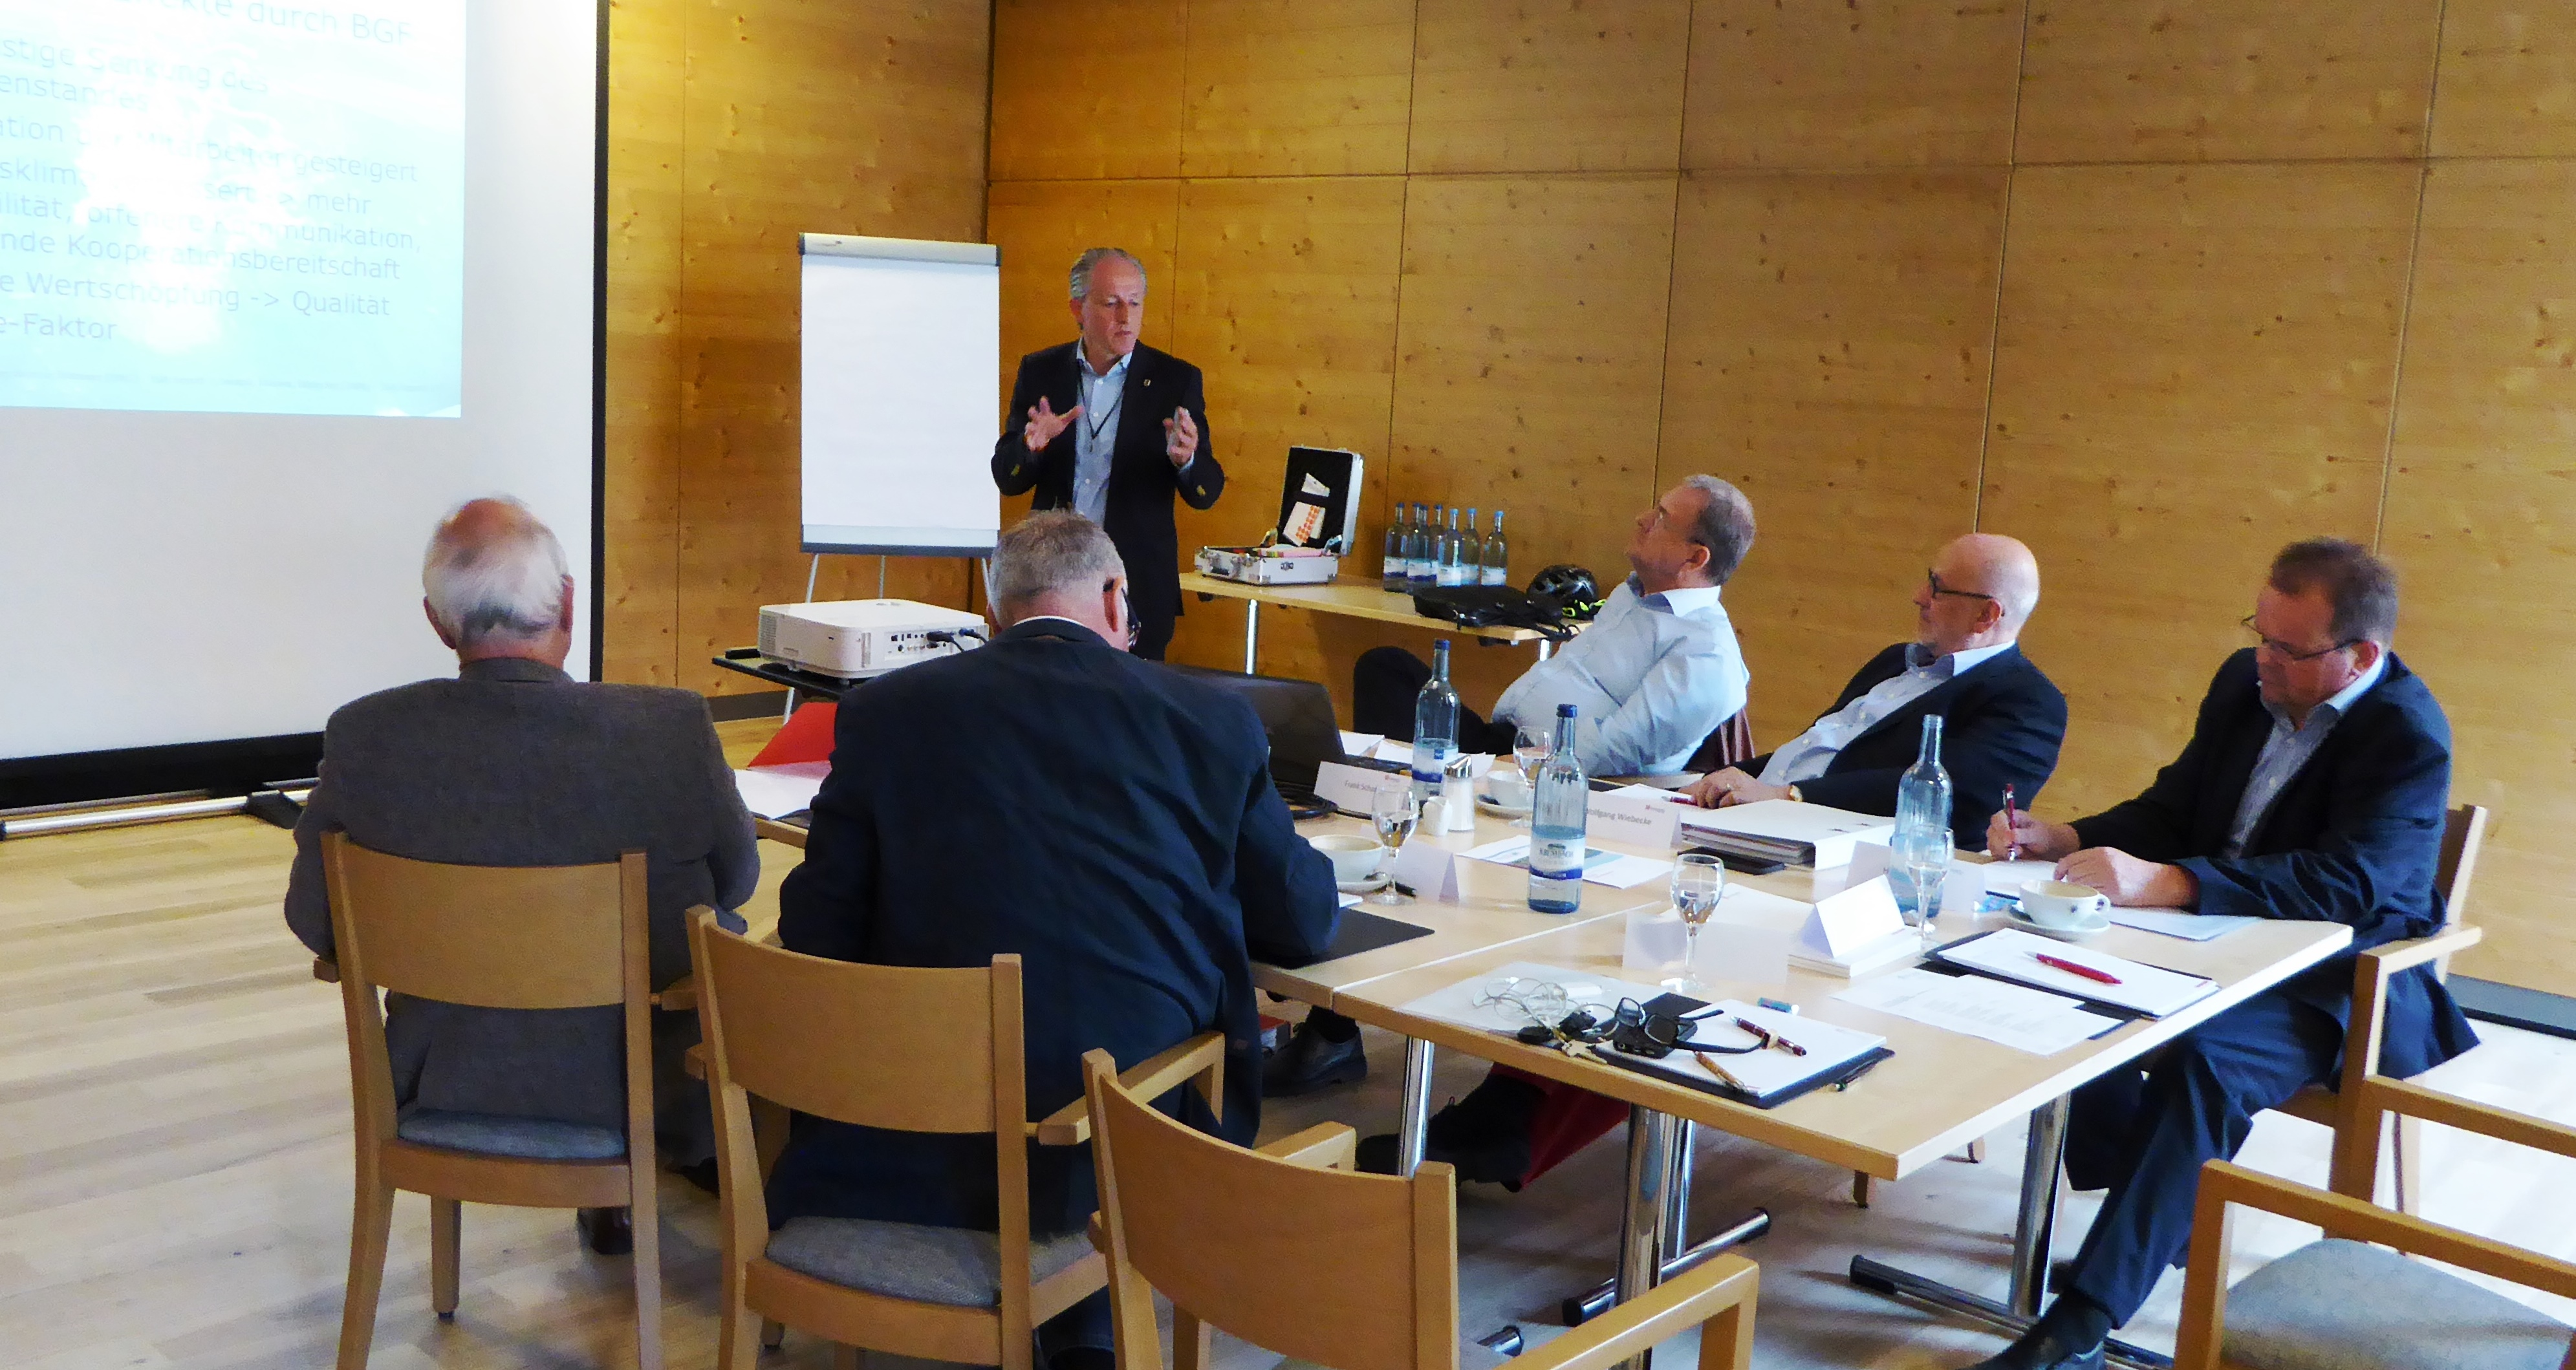 CoFi - Coaching mit Figuren